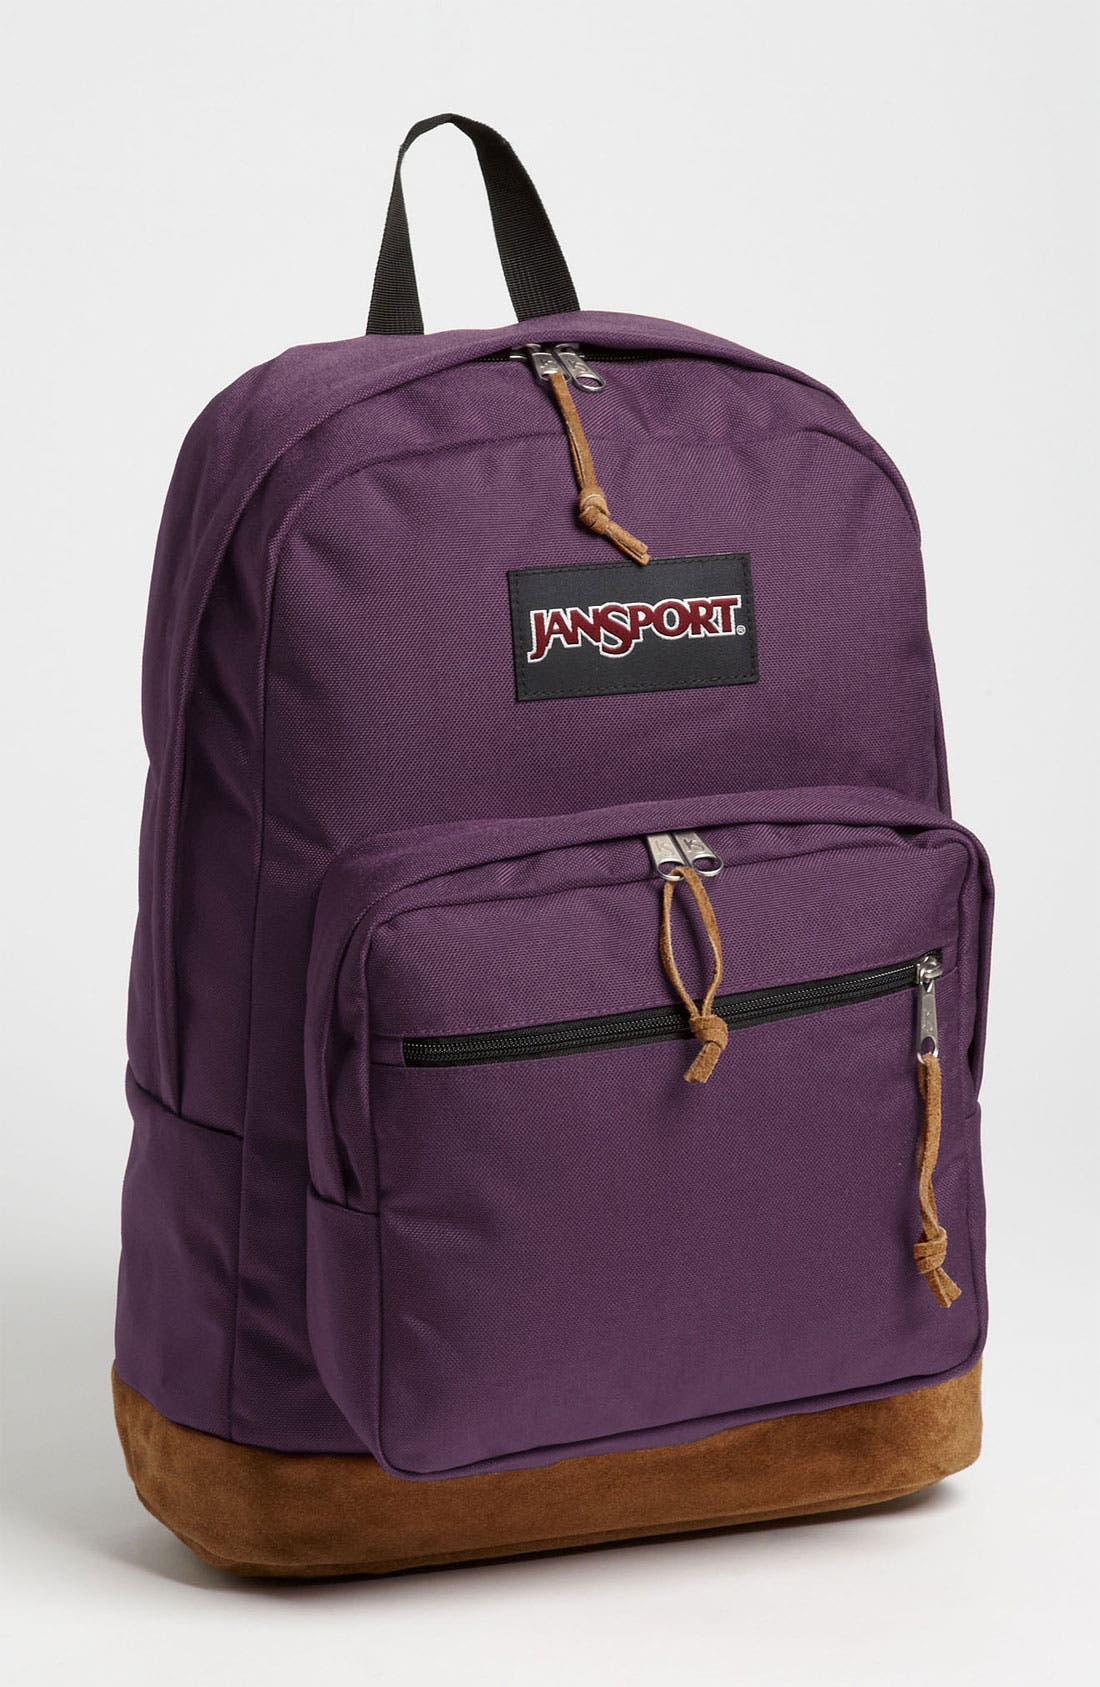 Main Image - Jansport 'Right' Backpack